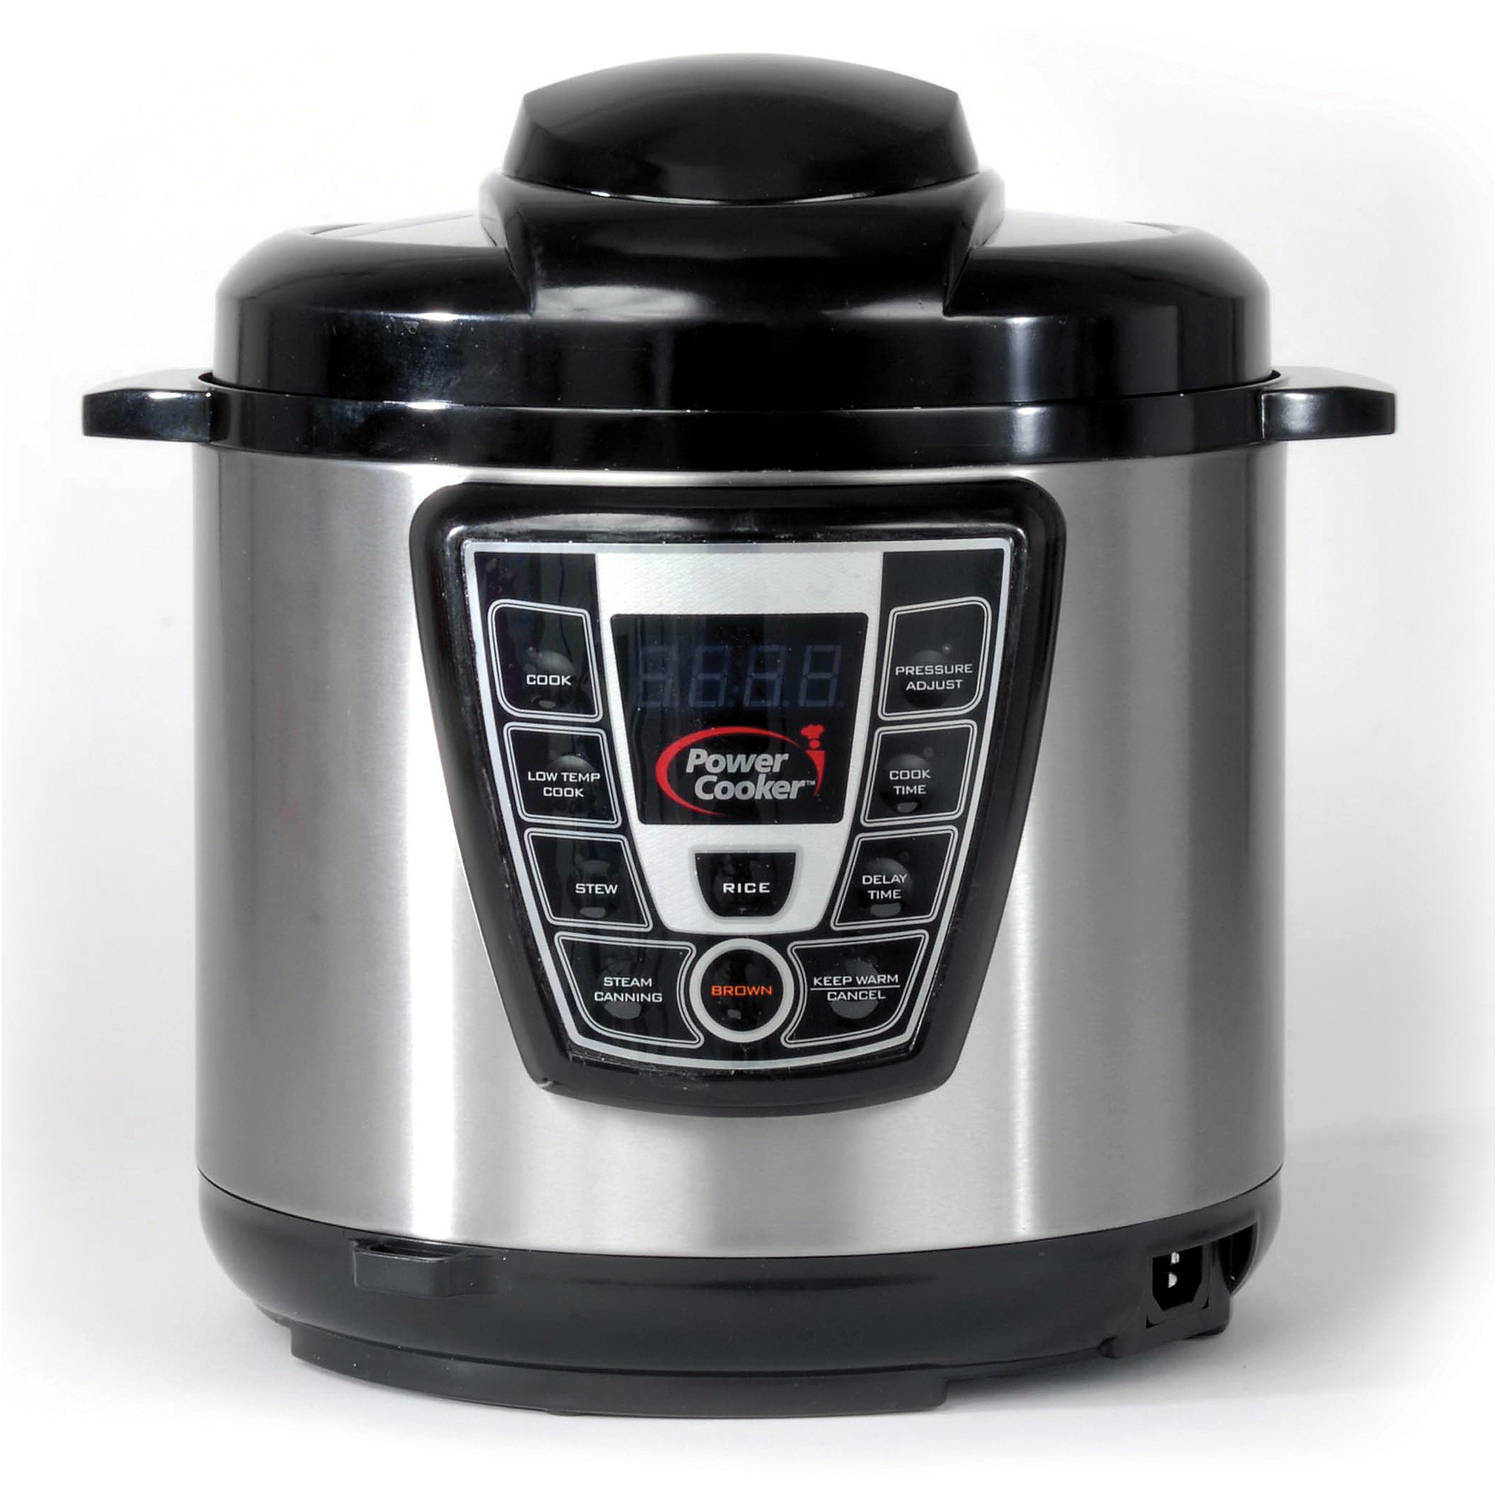 Power Cooker Pressure Cooker 6 Qt.